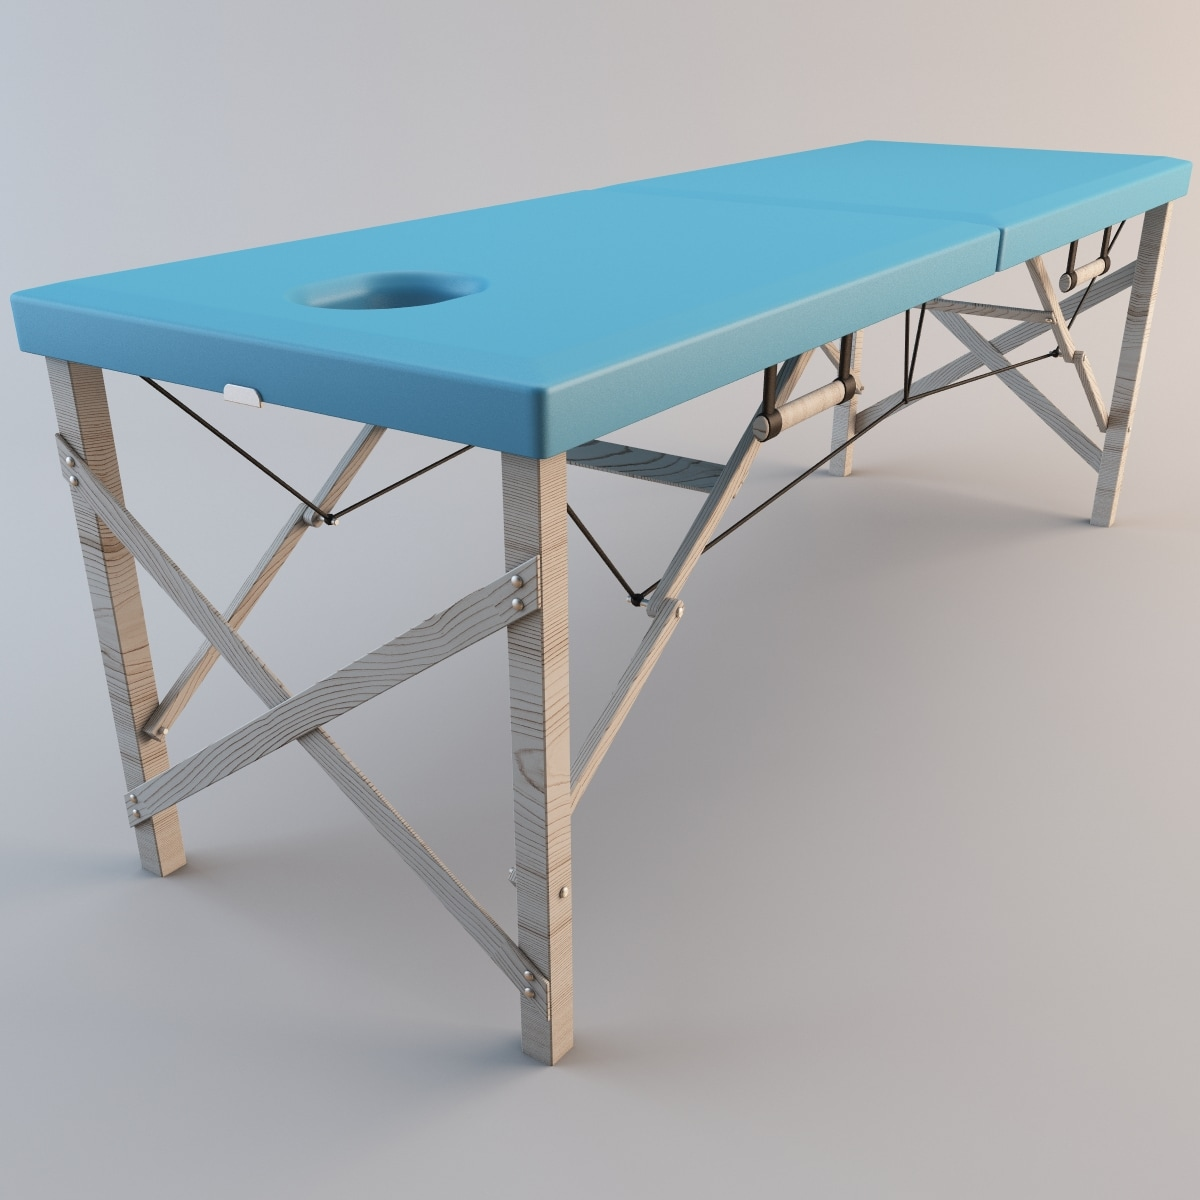 Massage_Table_2_004.jpg